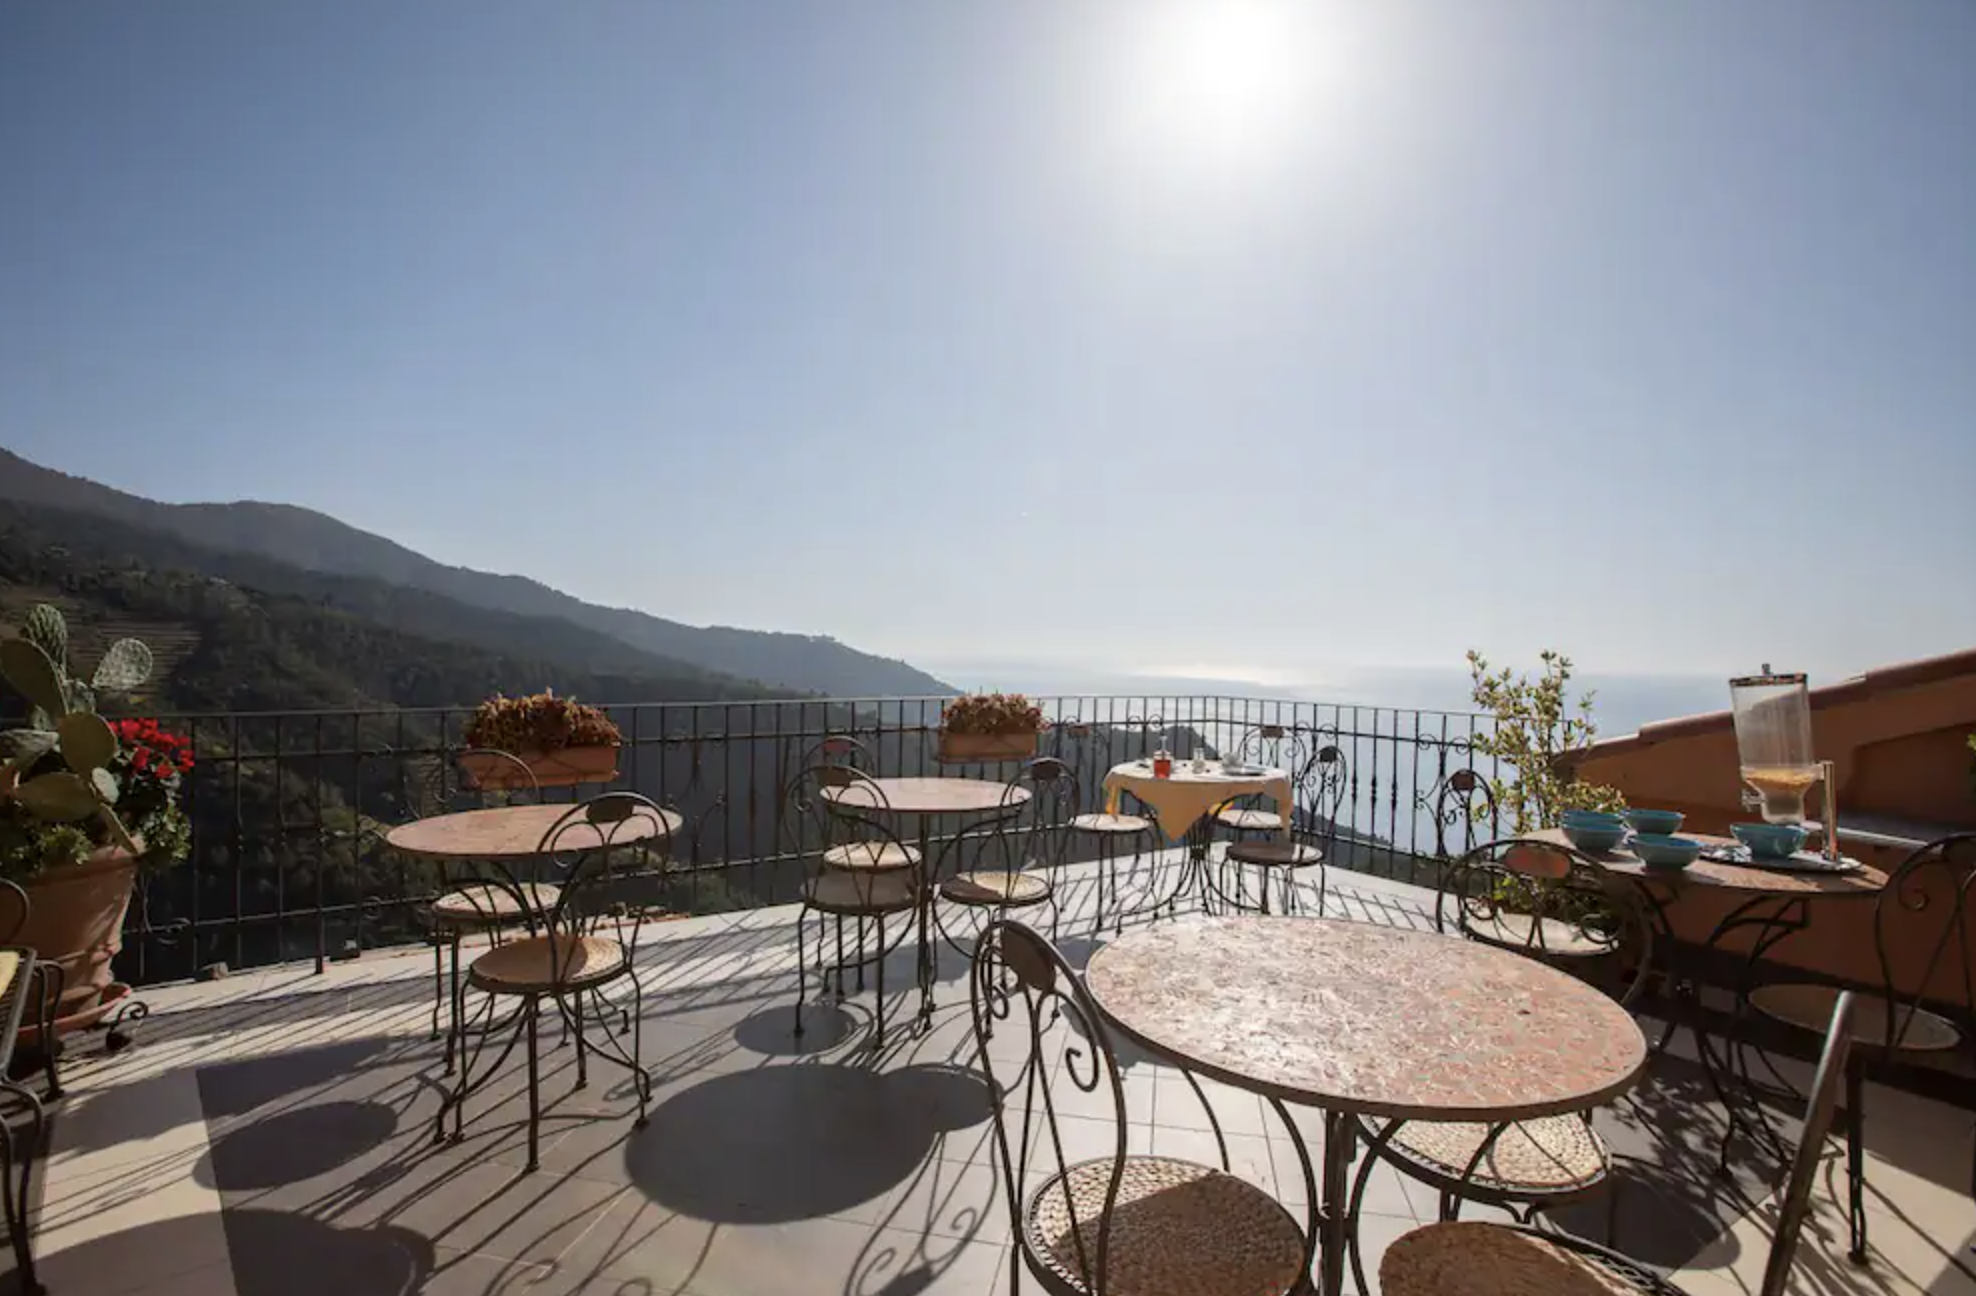 Outdoor terrace with breakfast tables overlooking the mountains and sea.